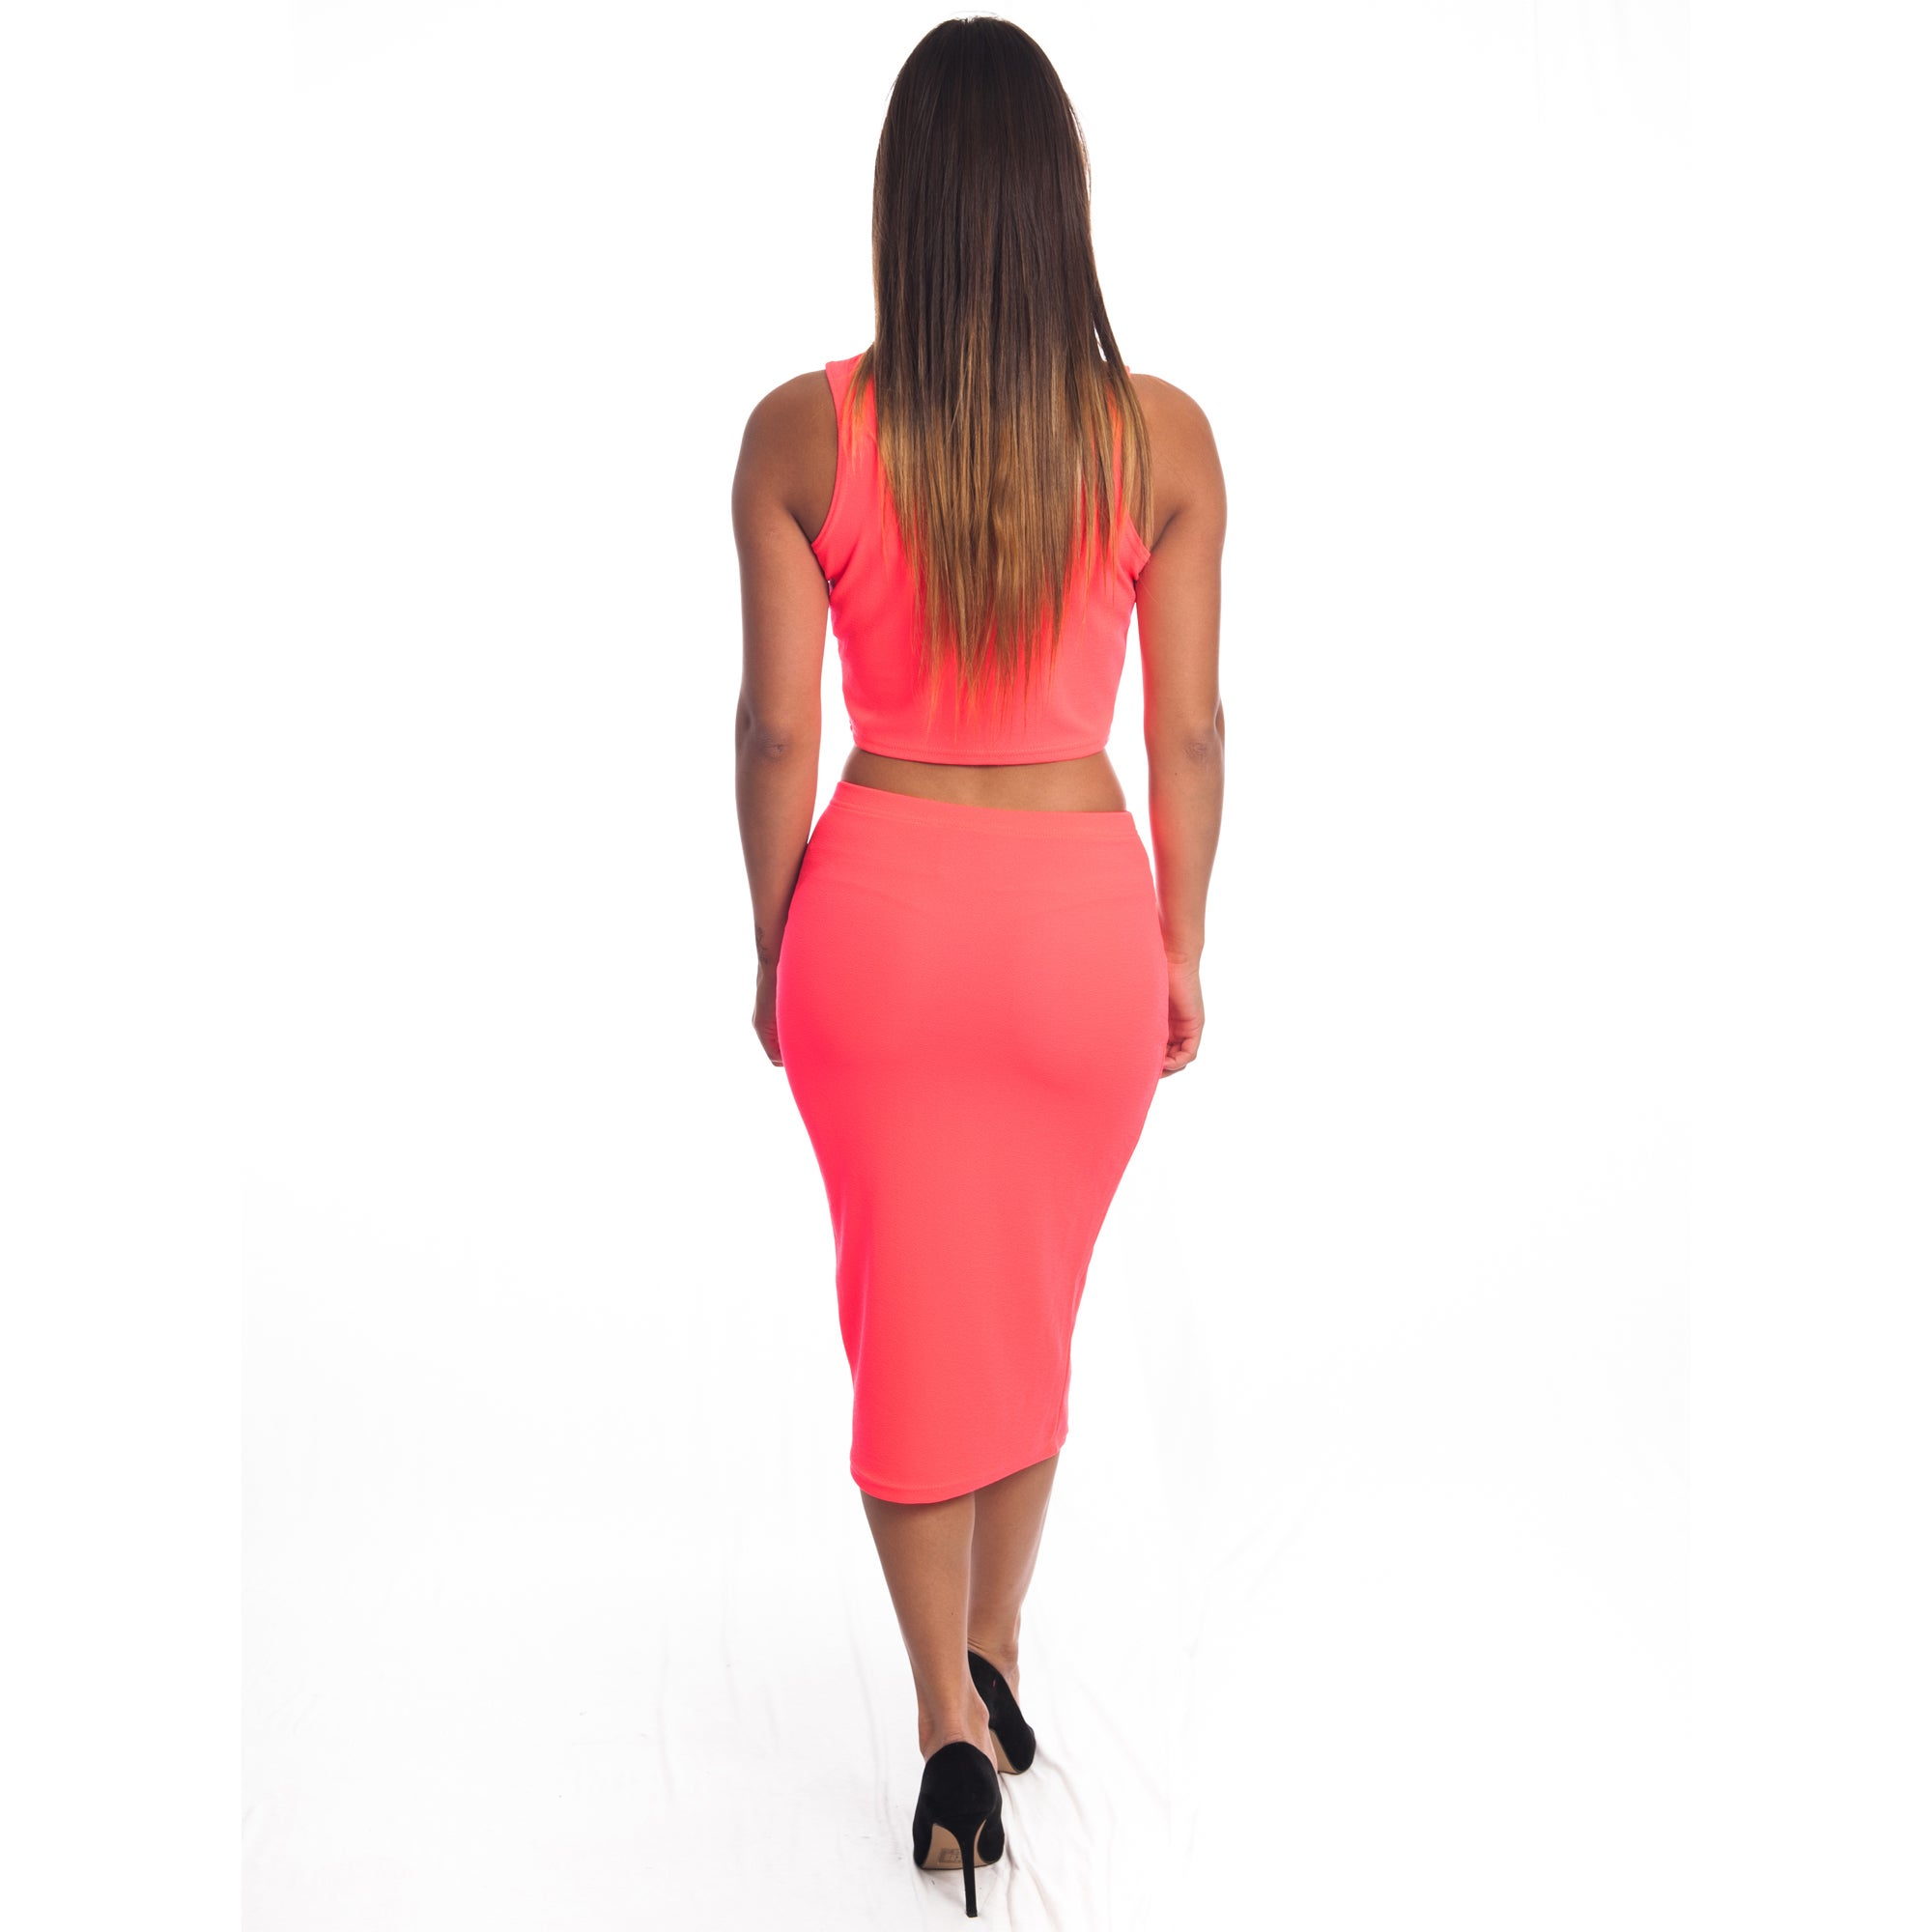 bb24298998 Shop Special One Women's 2-piece Bodycon Crop Top and Miniskirt Outfit -  Free Shipping On Orders Over $45 - Overstock - 11999359